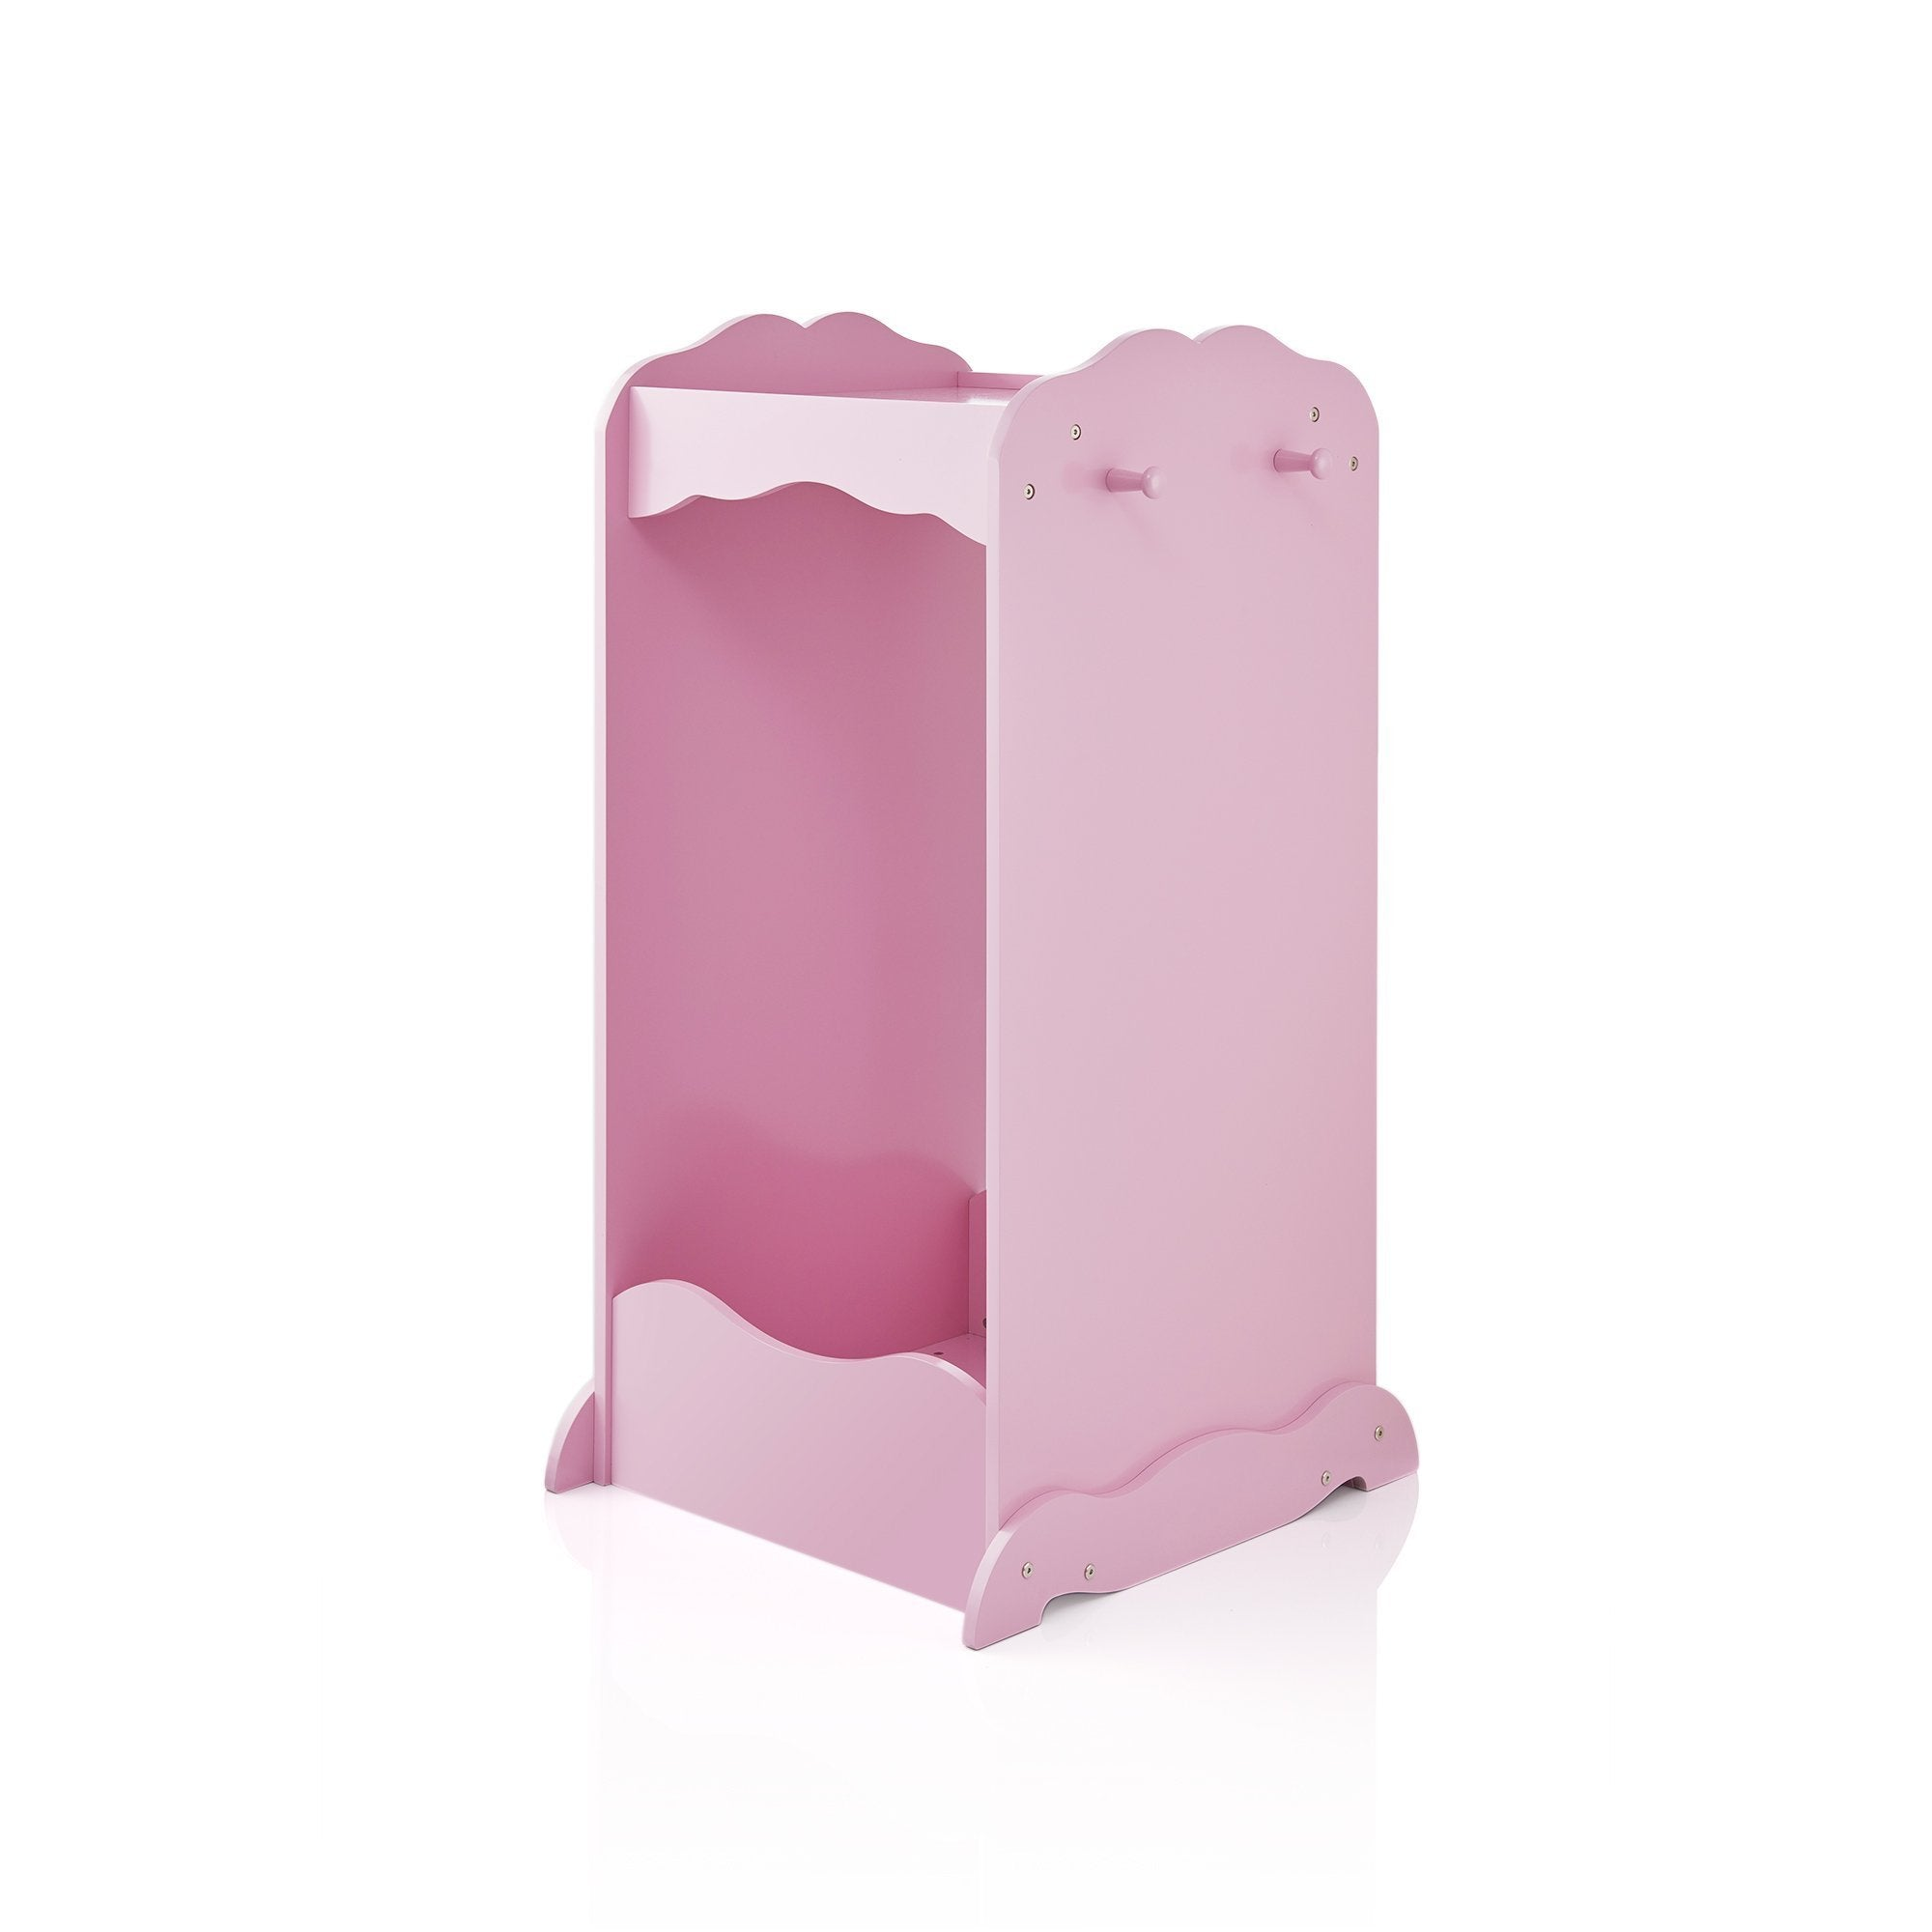 New guidecraft dress up cubby center pink costumes accessoires storage shelf and rack with mirror for little girls and boys toddlers wooden wardrobe closet